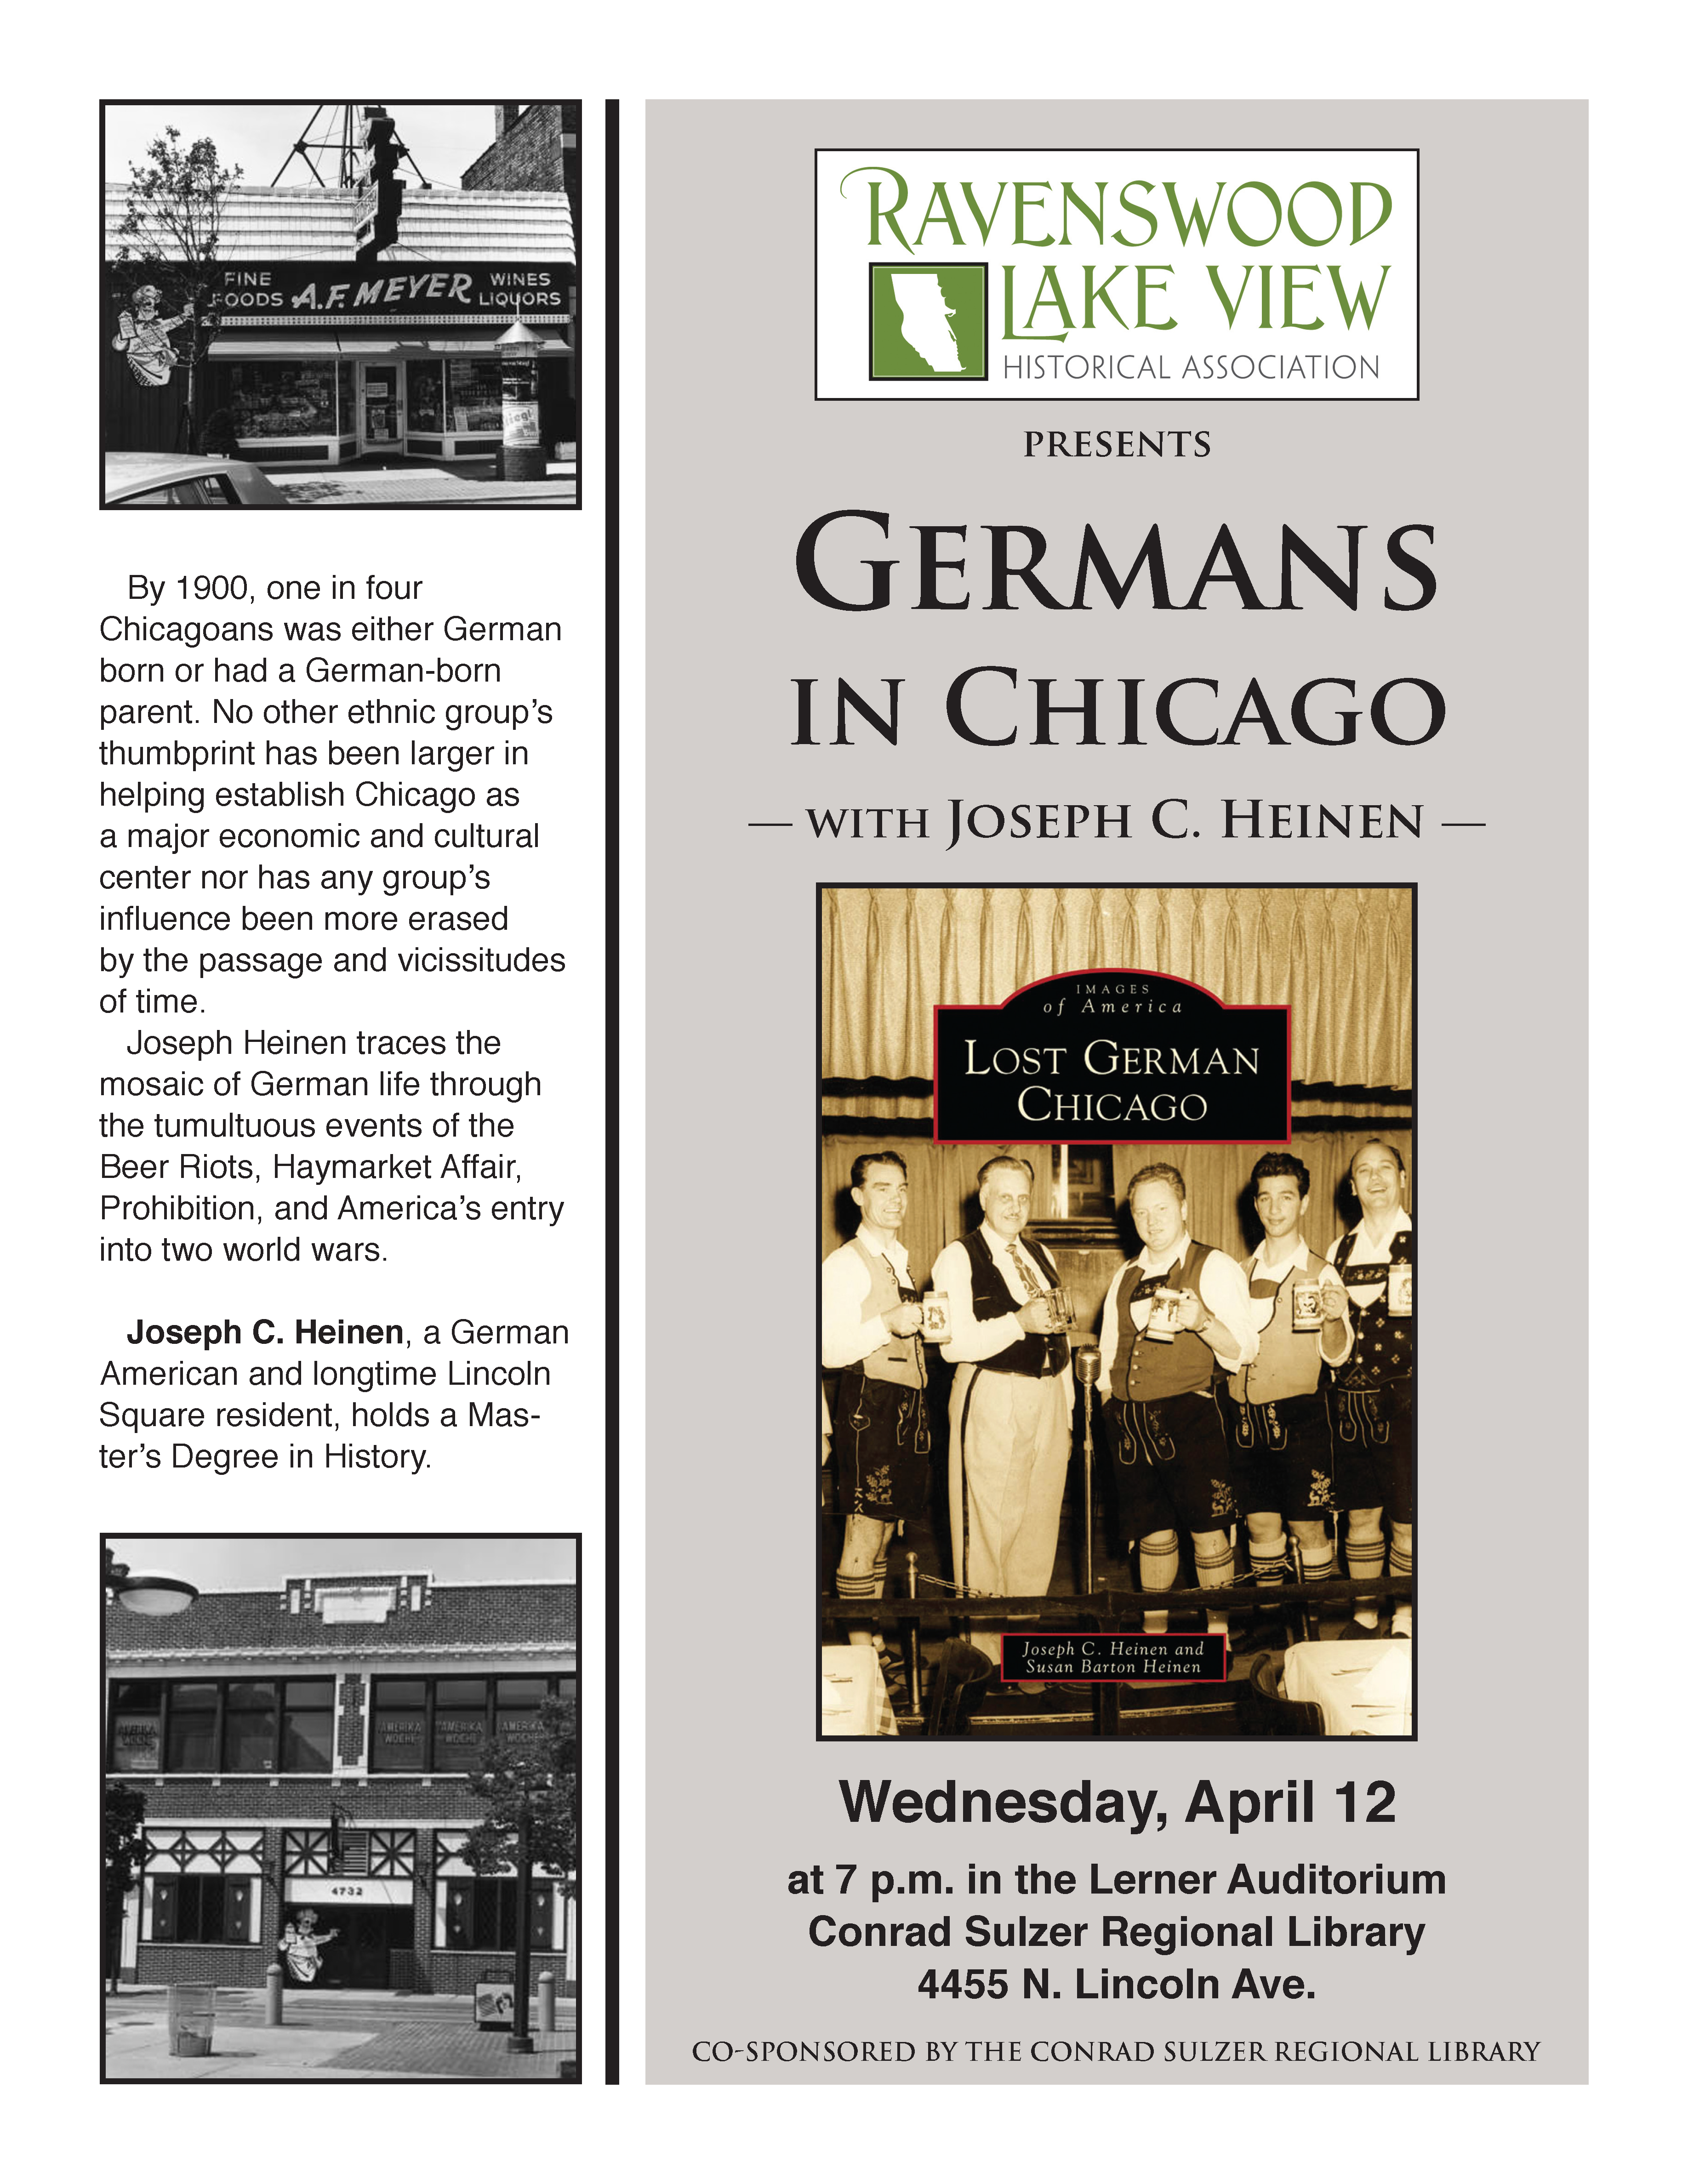 Germans in Chicago, 7:00 p.m, Wednesday, April 12, 2016, Contad Sulzer Regional Library, 455 N. Lincoln Ave.